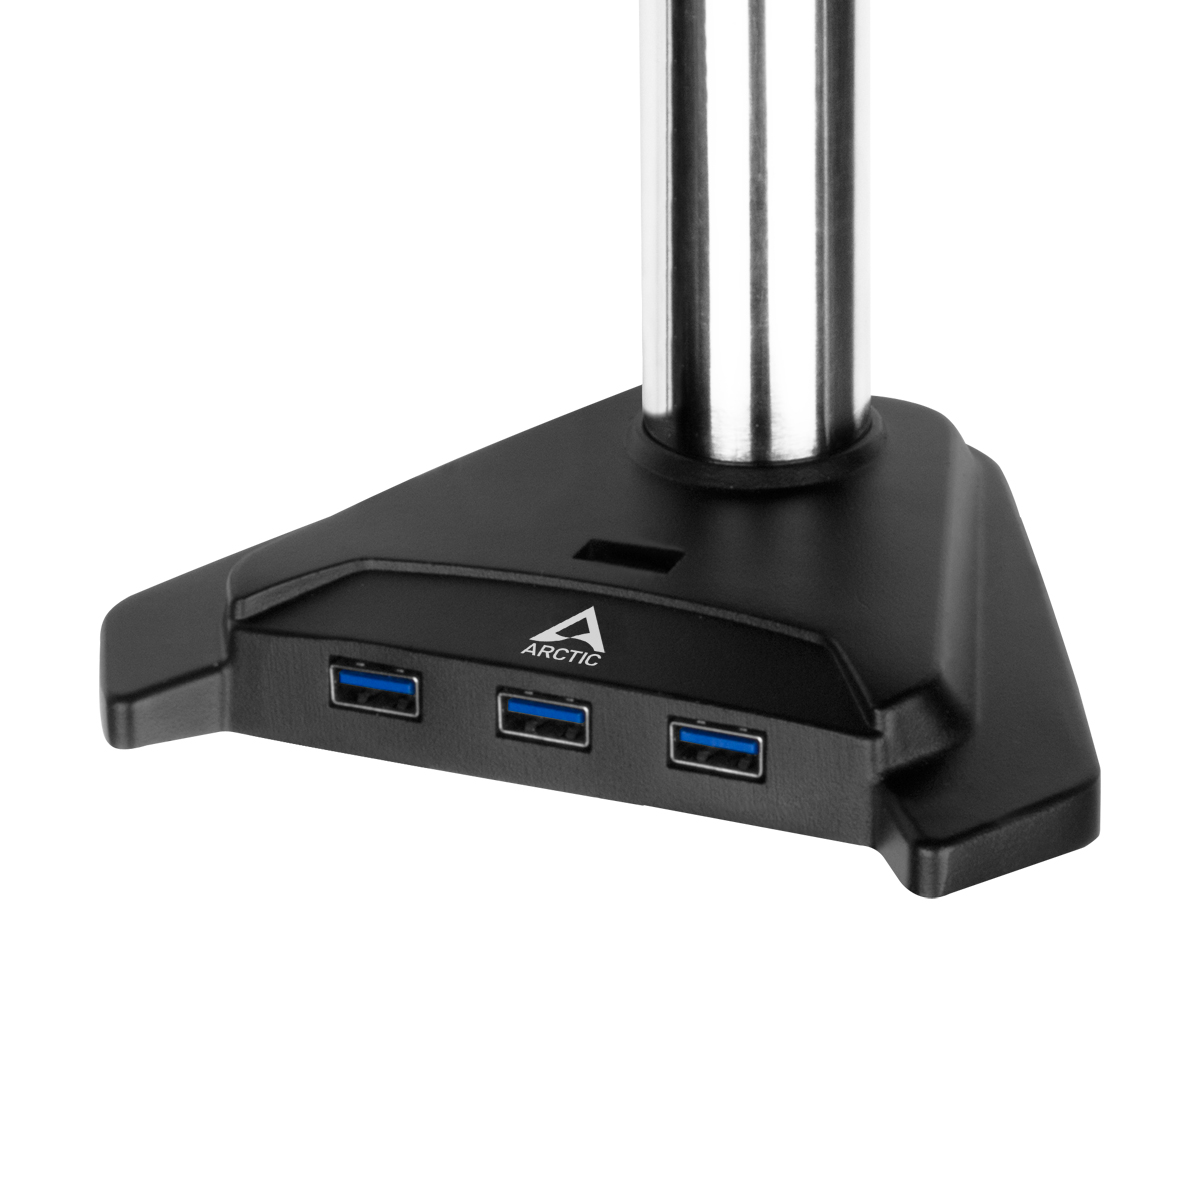 Desk Mount Monitor Arm with SuperSpeed USB Hub ARCTIC Z1 Pro (Gen 3) Detail View SuperSpeed USB Hub